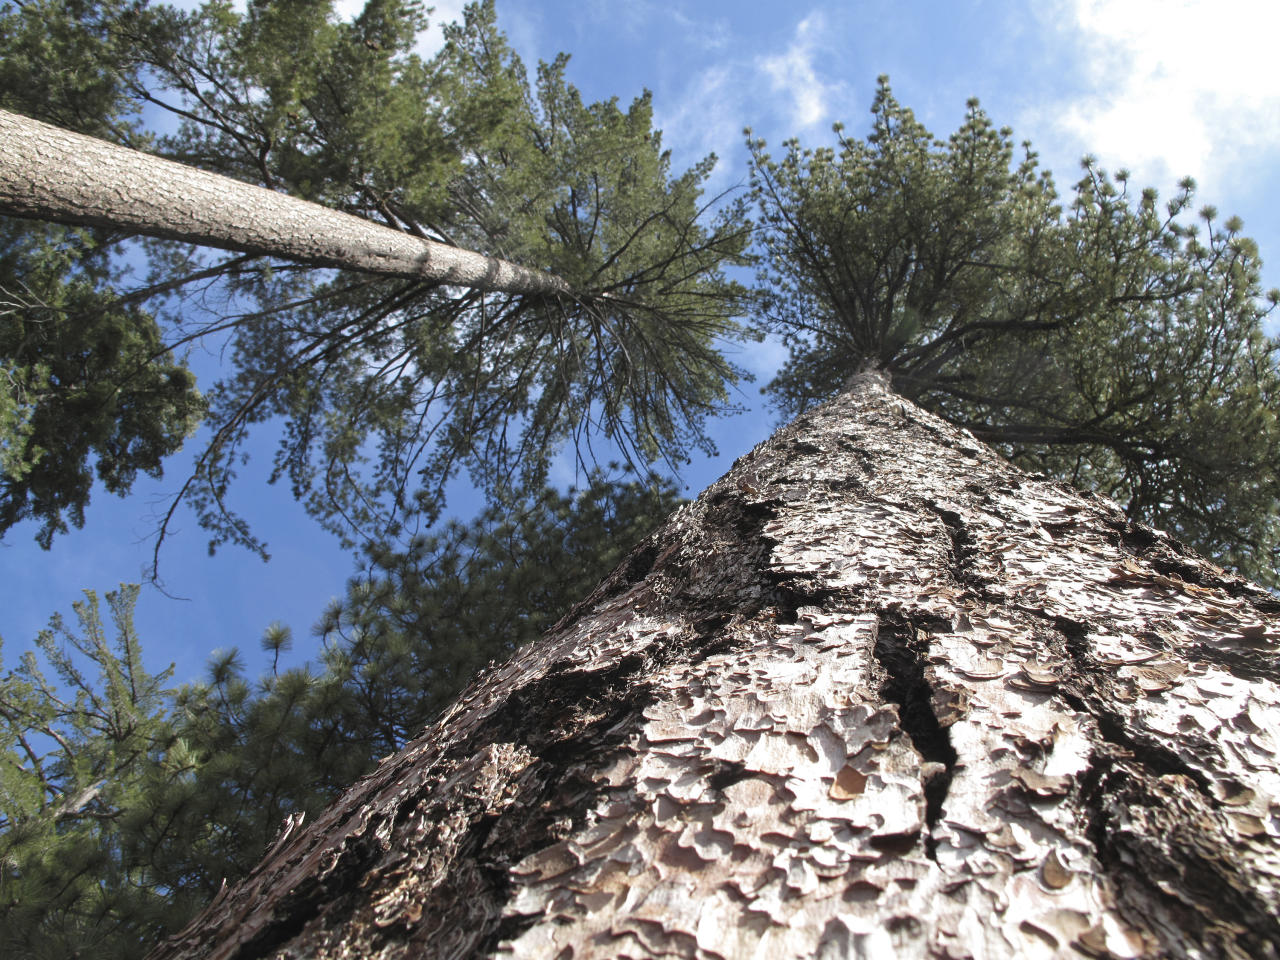 FILE - This April 14, 2017 file photo shows trees near where U.S. Interior Secretary Ryan Zinke visited Kings Canyon National Park, Calif. A year of upheaval at the U.S. Interior Department has seen dozens of senior staff members reassigned and key leadership positions left unfilled, rules considered burdensome to industry shelved, and repeated complaints that dissenting views have been sidelined. (AP Photo/Scott Smith, File)